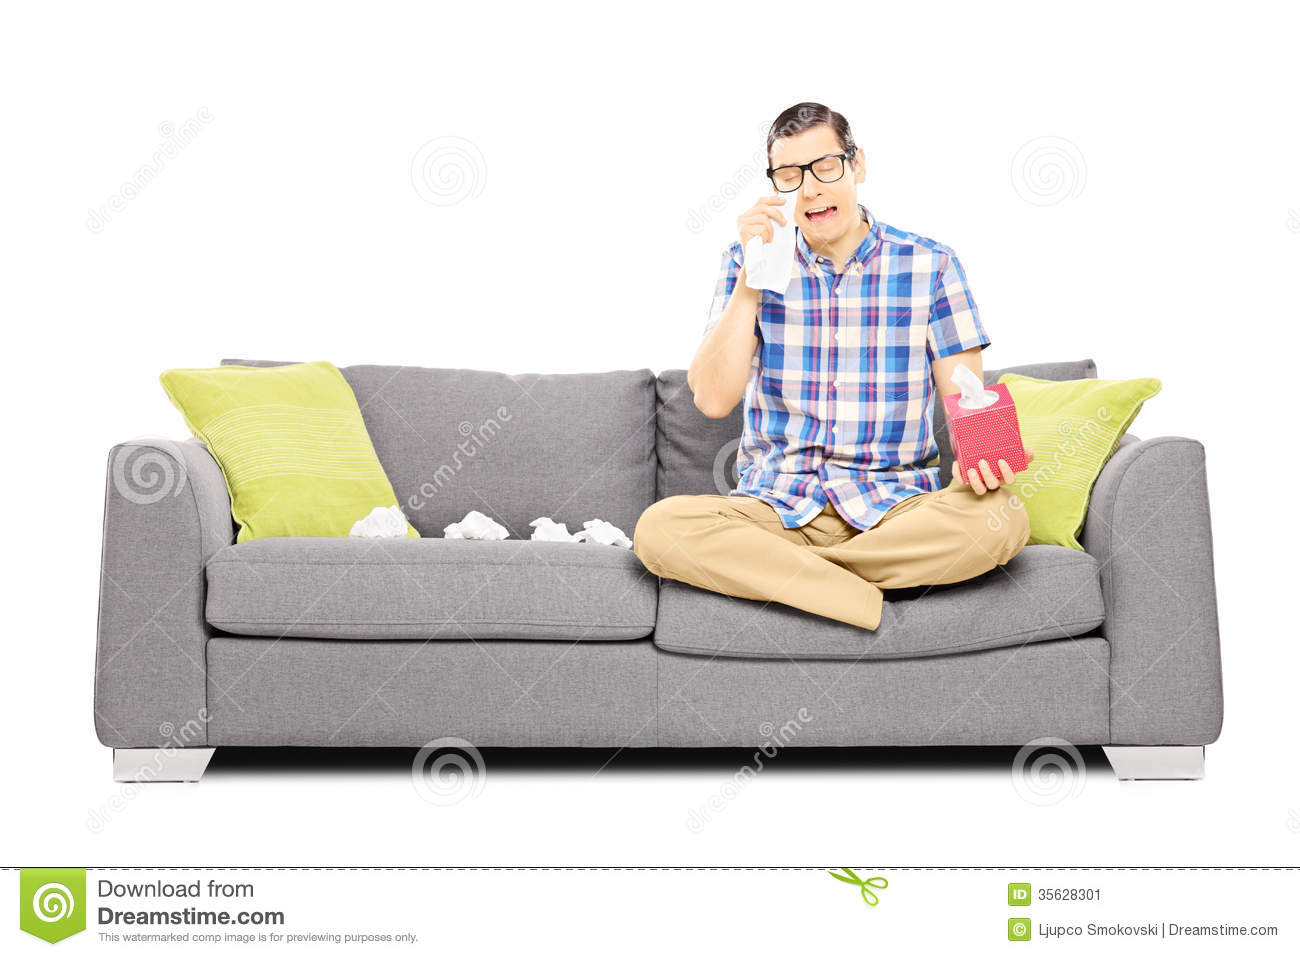 Sad Guy Sitting On A Couch And Wiping His Eyes From Crying Stock ...